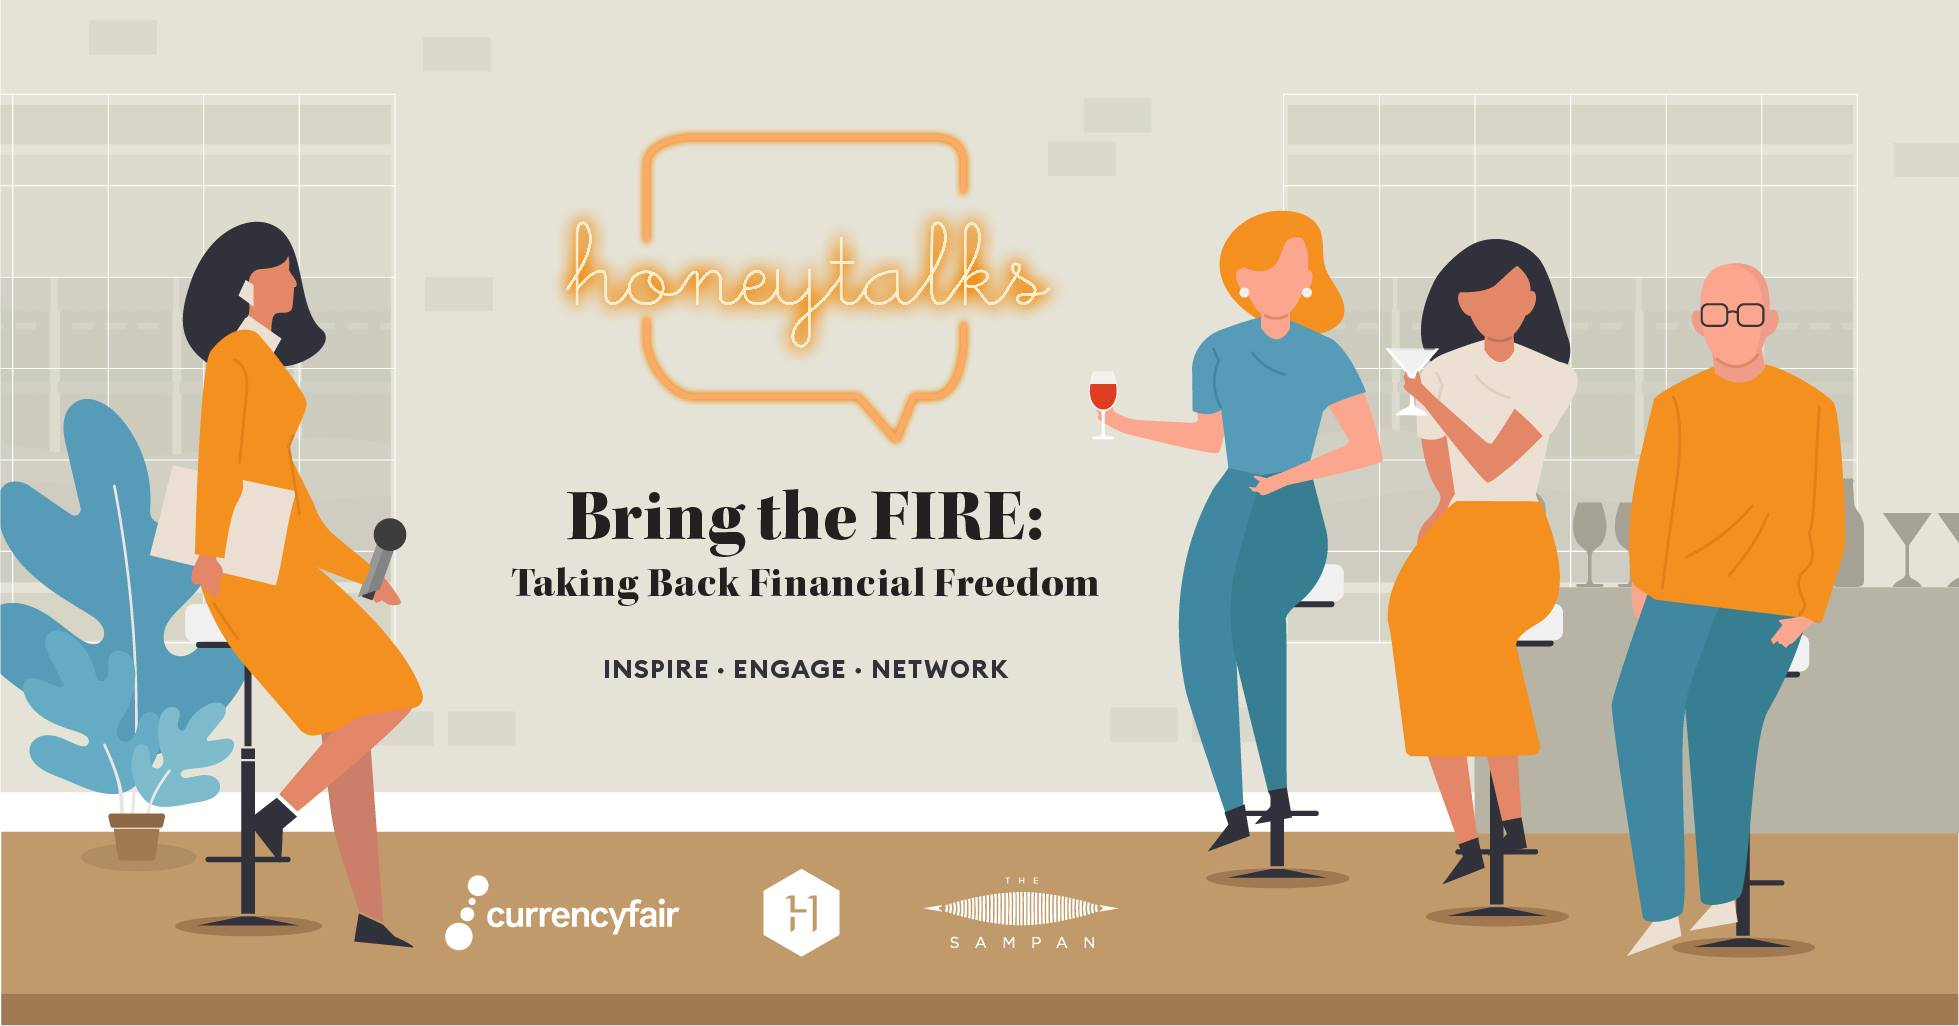 Panelist at Homeycombers' HoneyTalks event powered by CurrencyFair: Bring the FIRE, Taking Back Financial Freedom